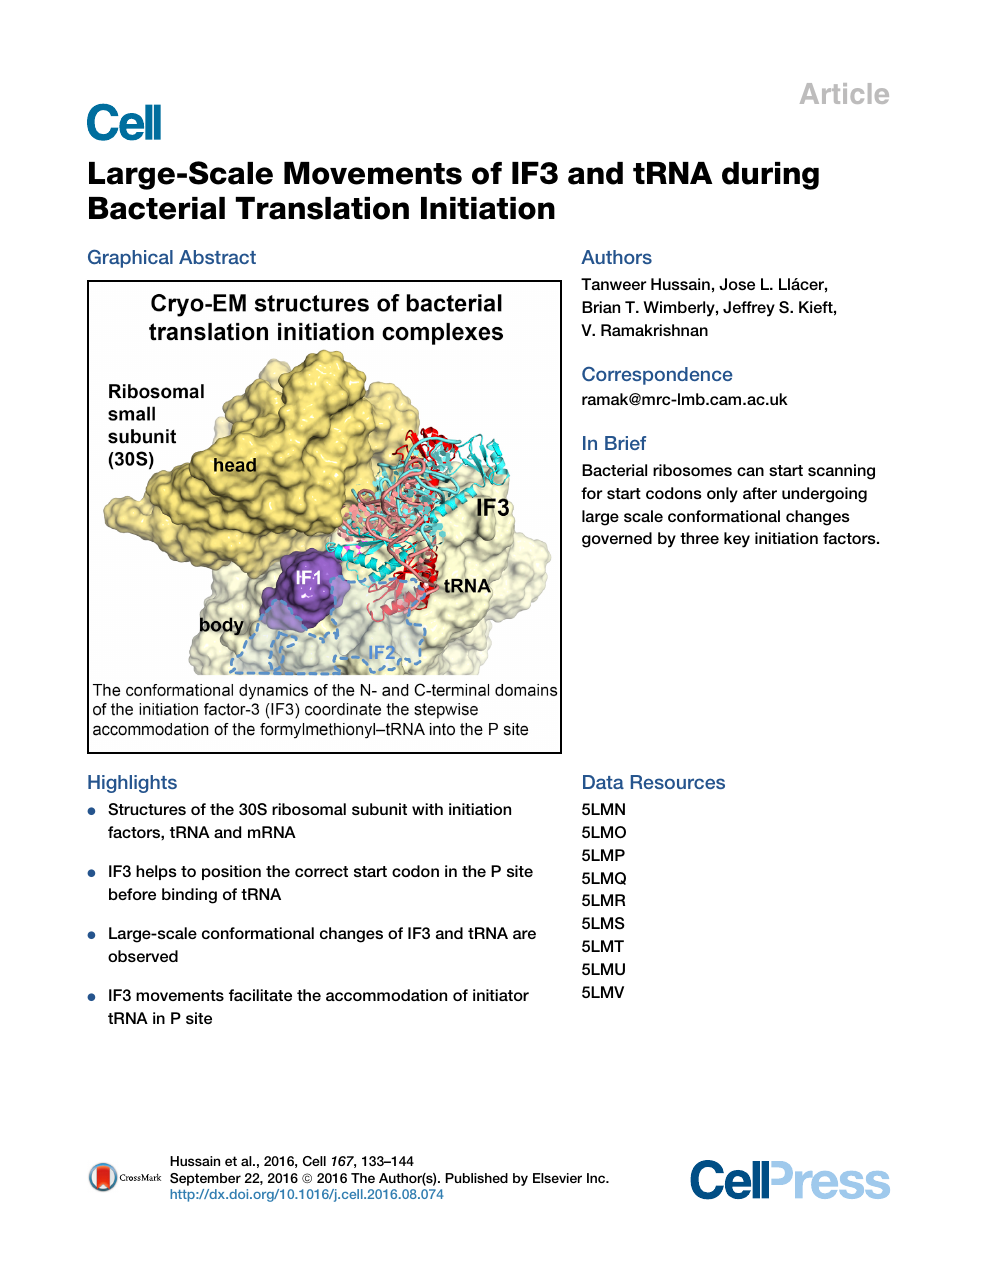 Large-Scale Movements of IF3 and tRNA during Bacterial